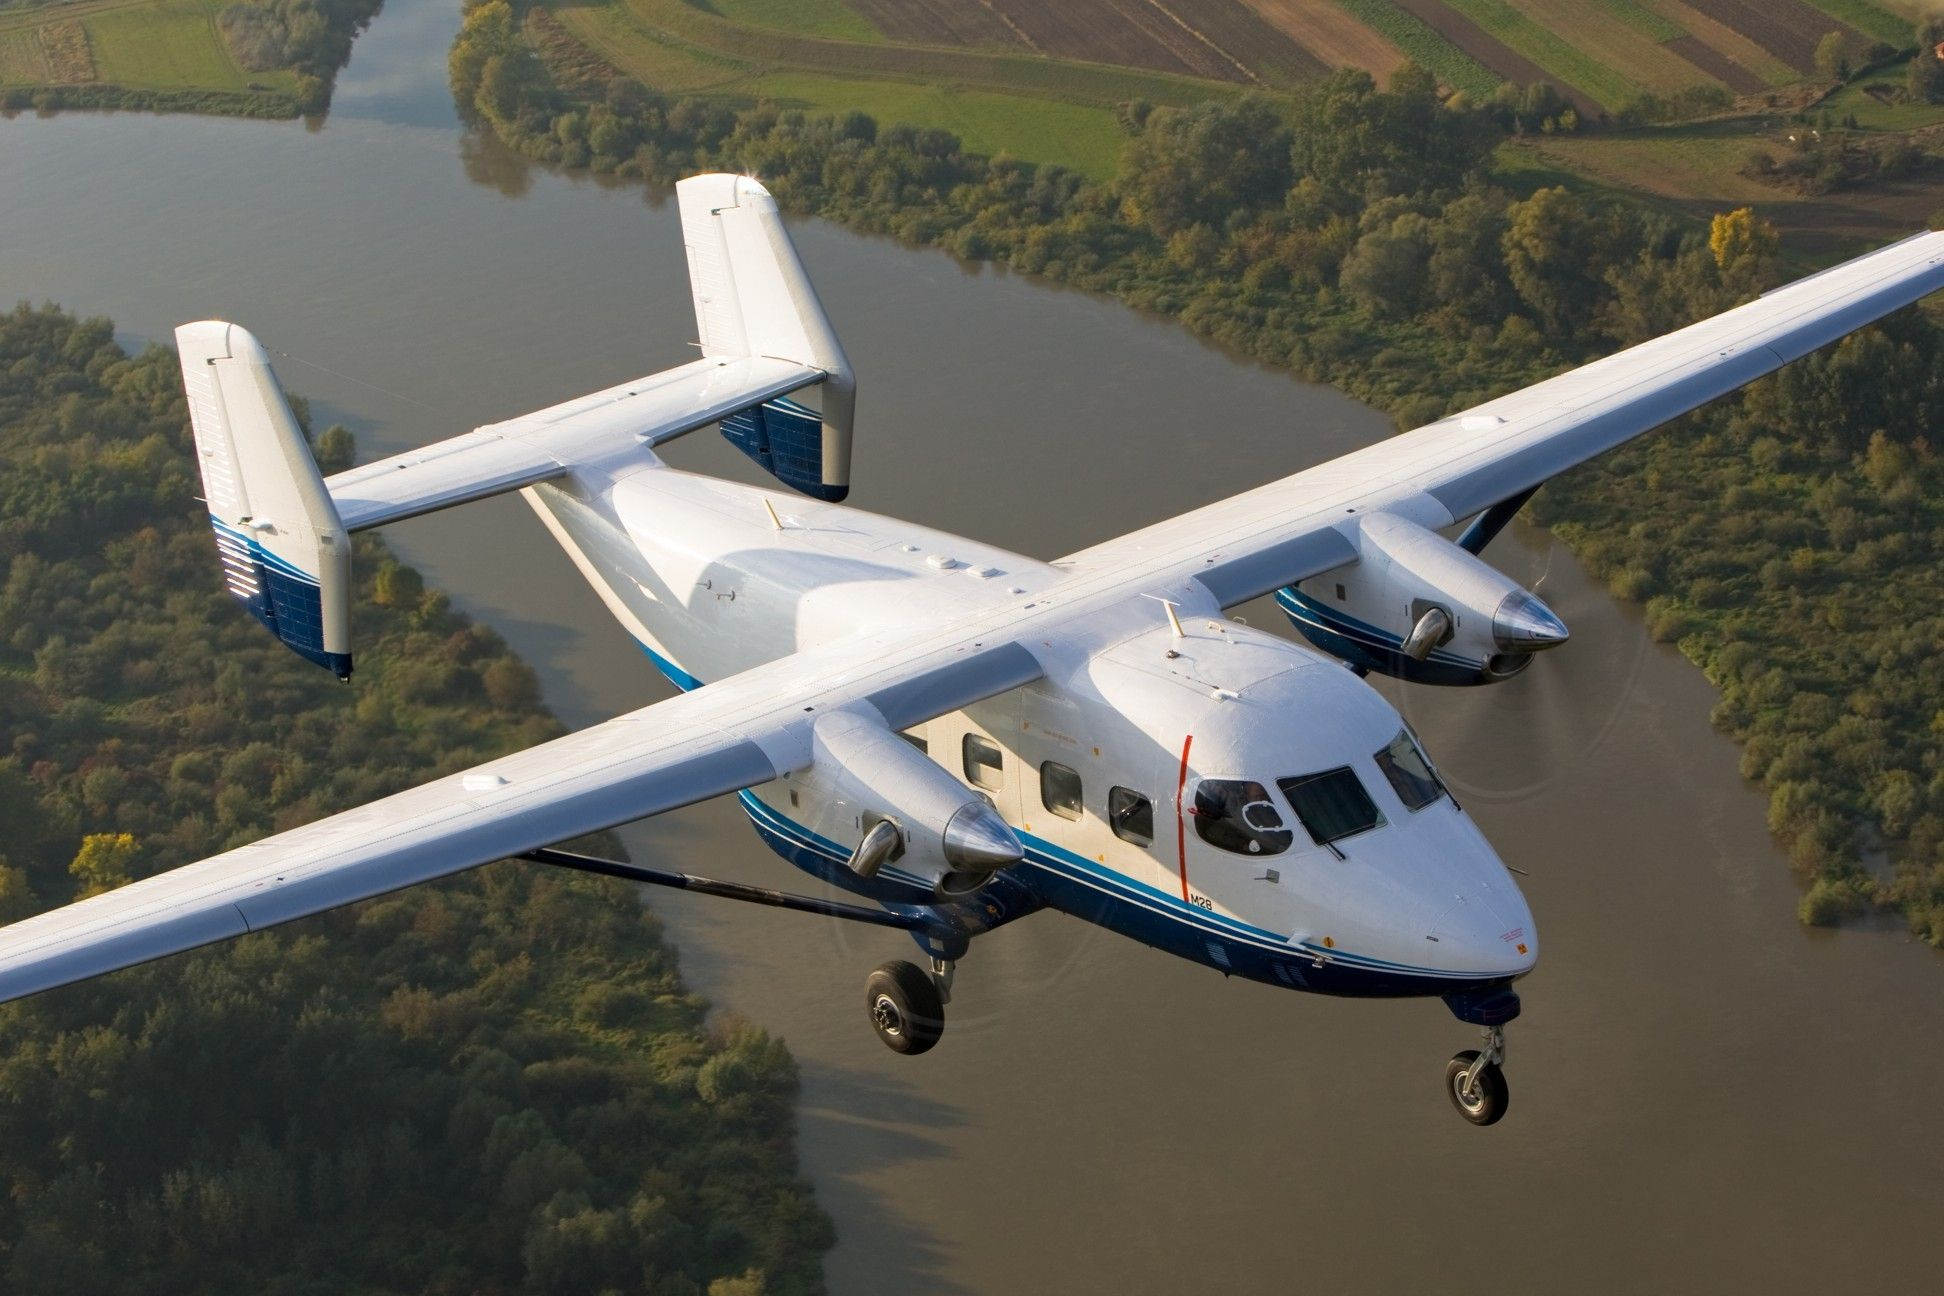 The M28 aircraft is a commutercategory class, multi